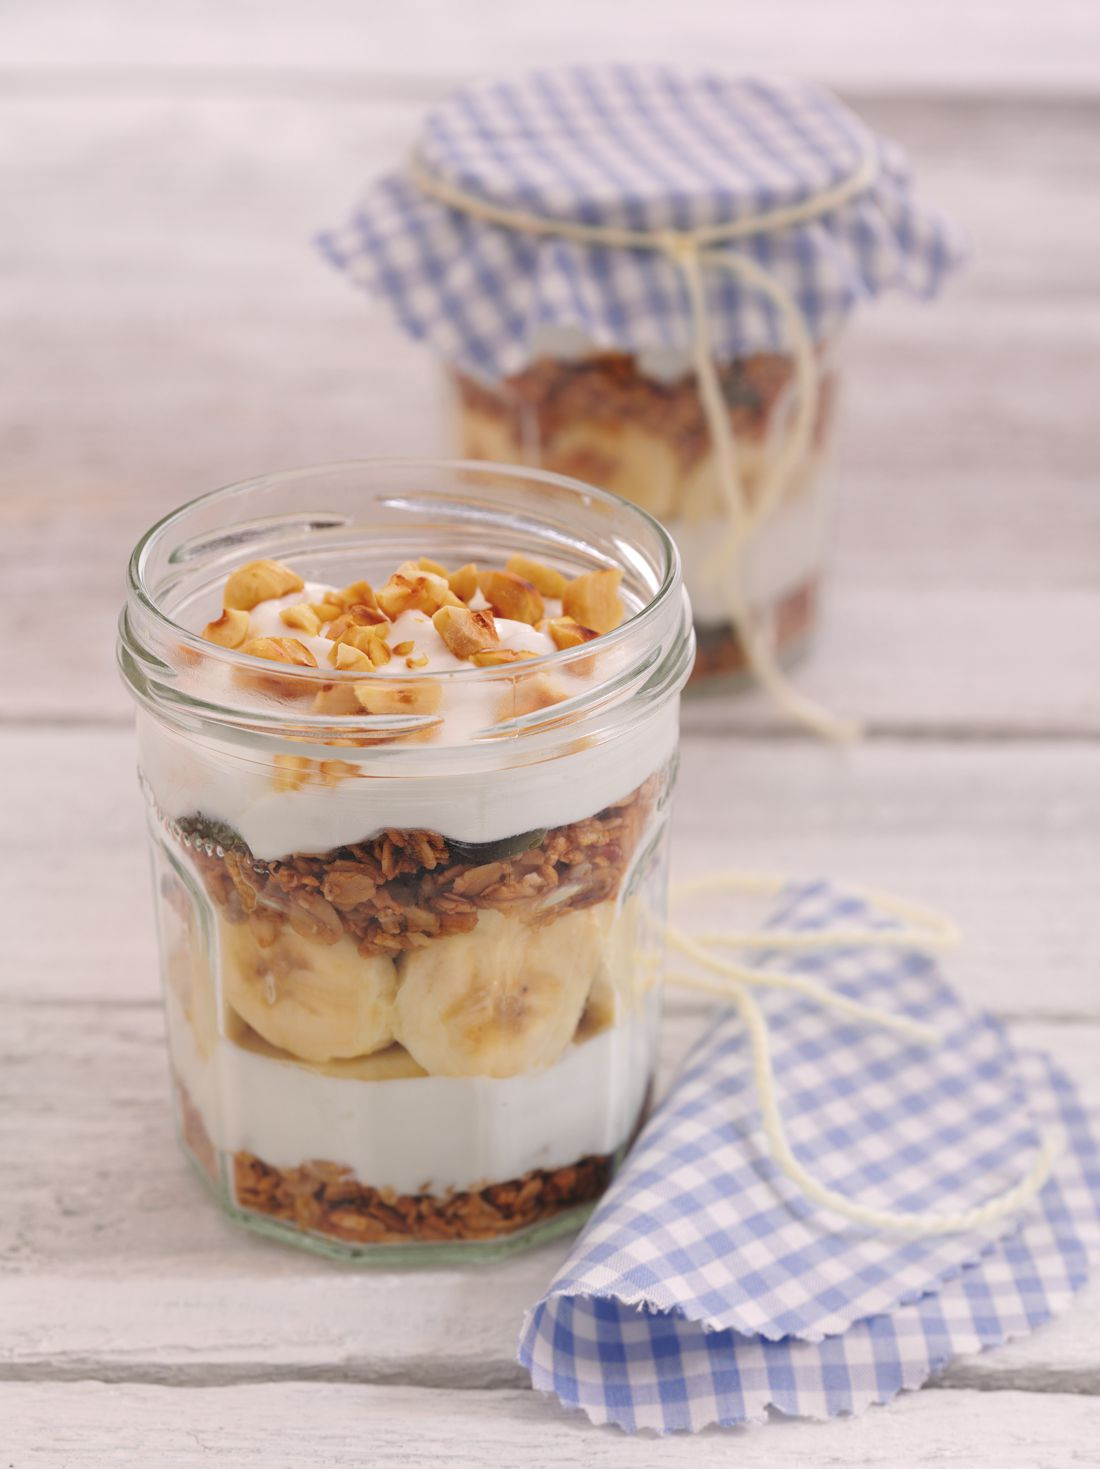 Yoghurt, Granola, Cereals, Oats, Bananas, Greek Yoghurt, Nuts and Honey